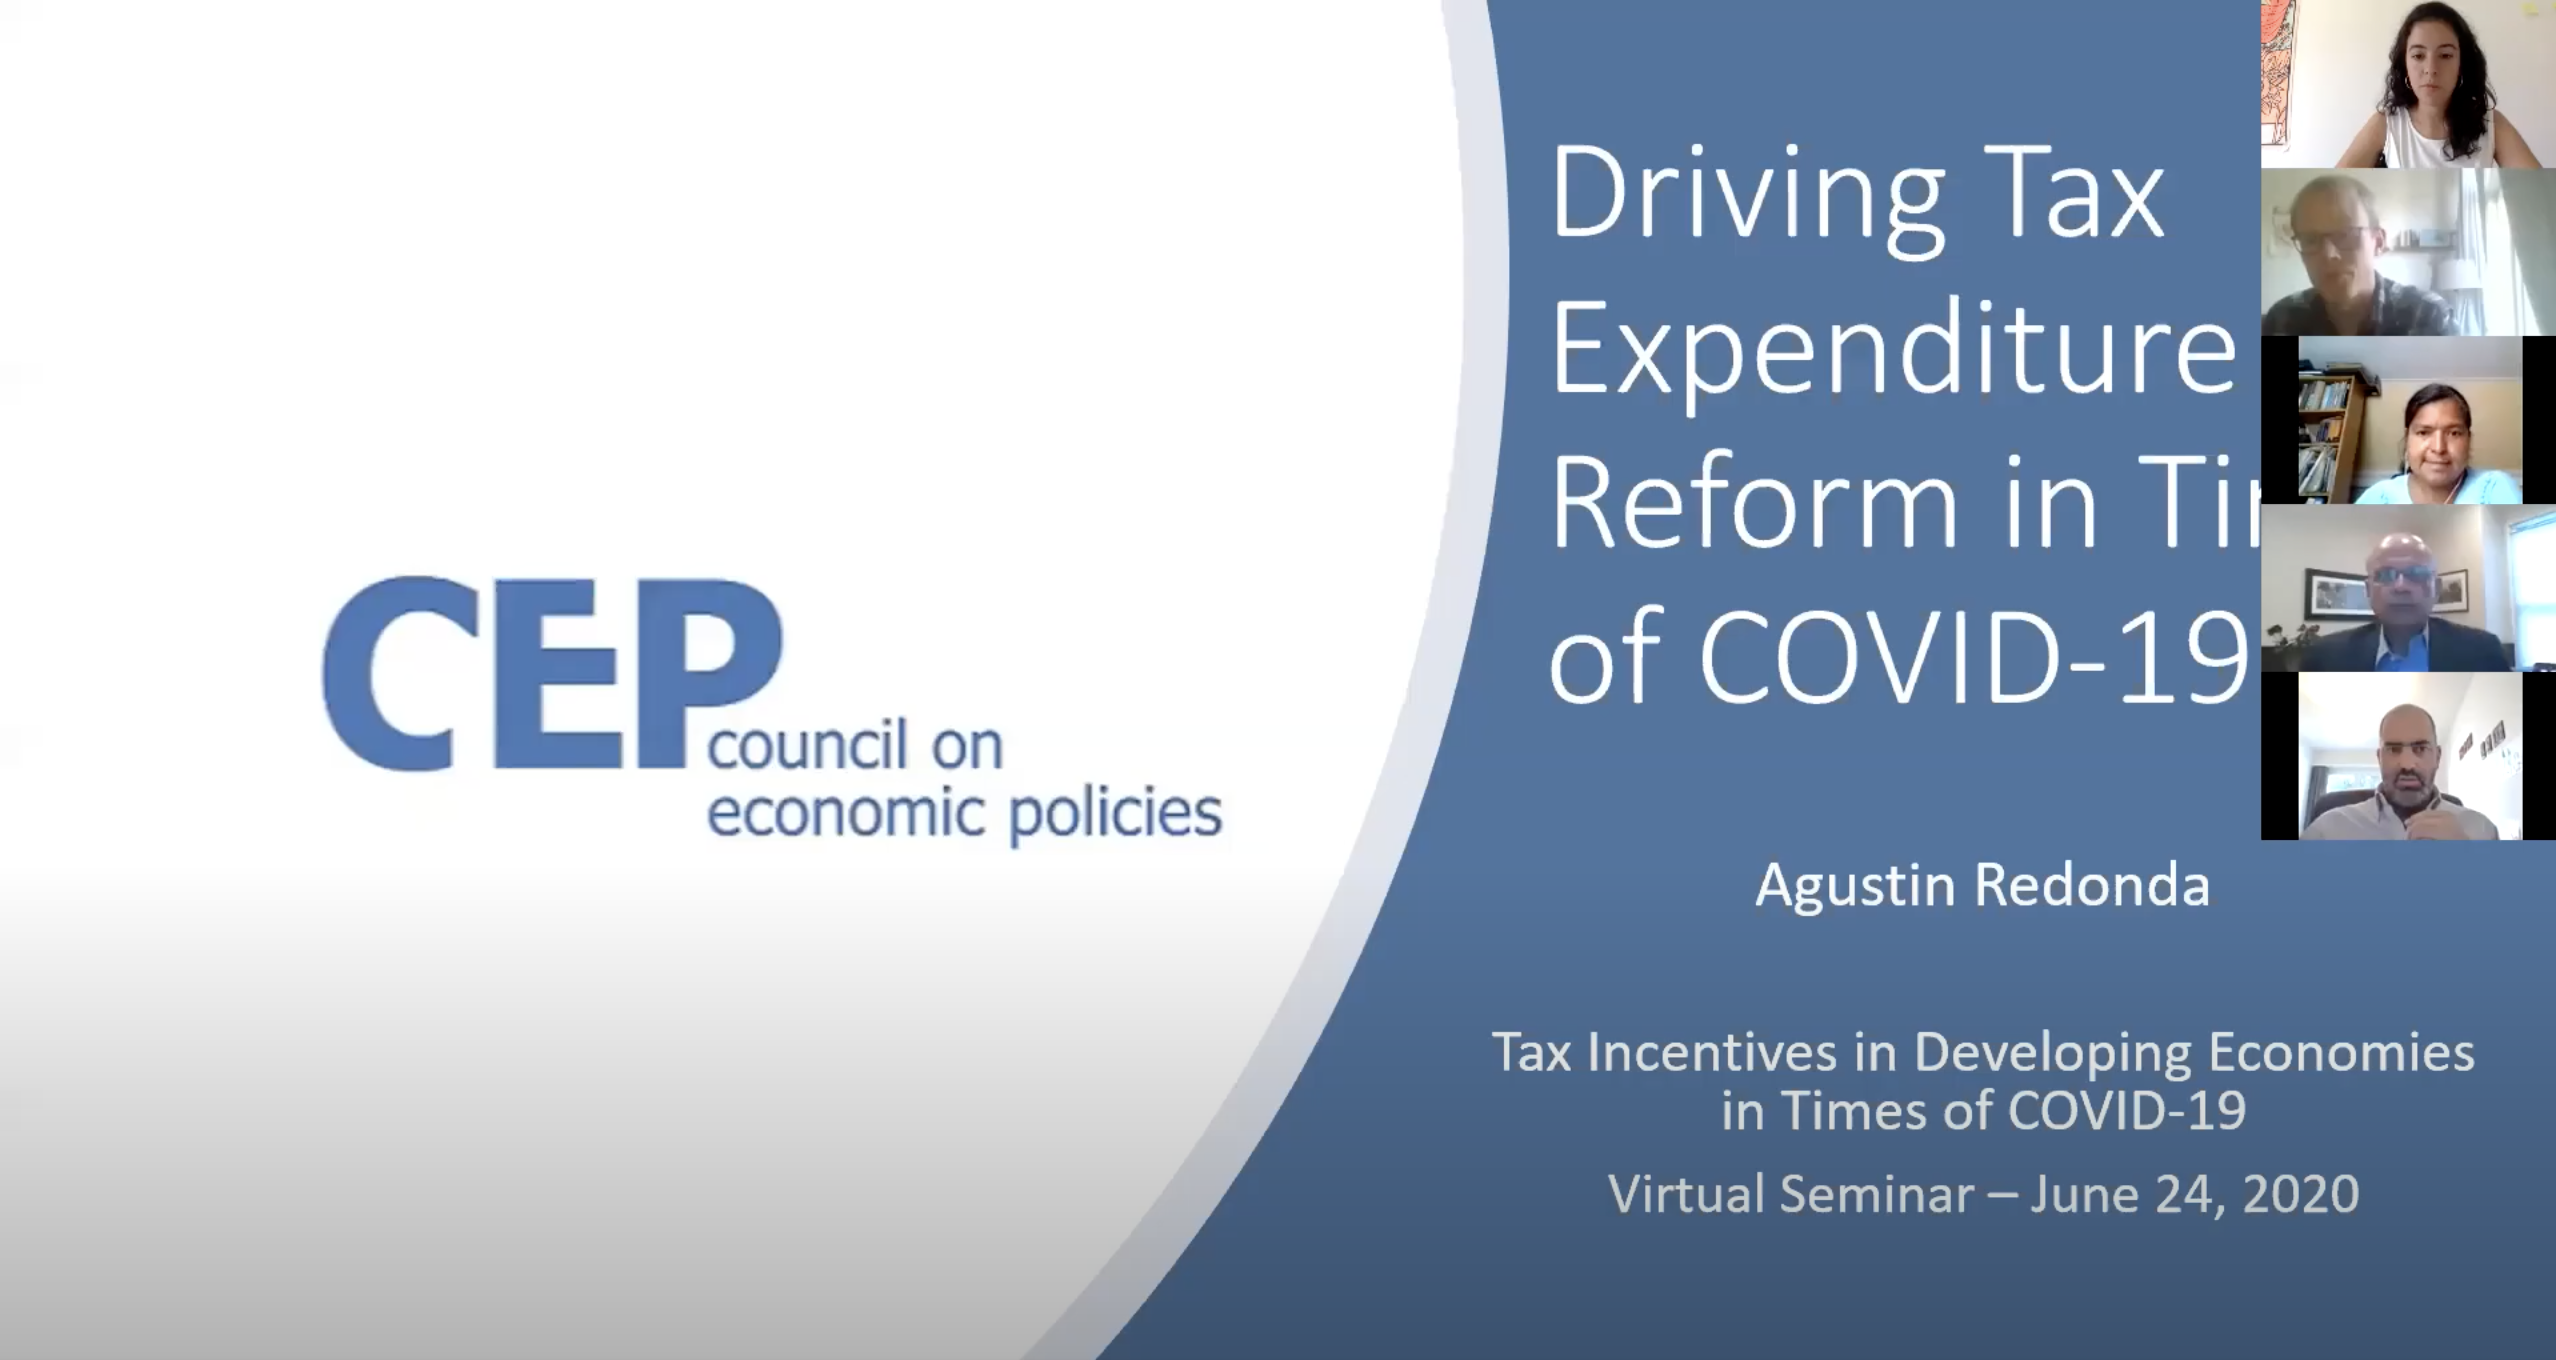 Tax Incentives in Developing Countries in Times of COVID-19